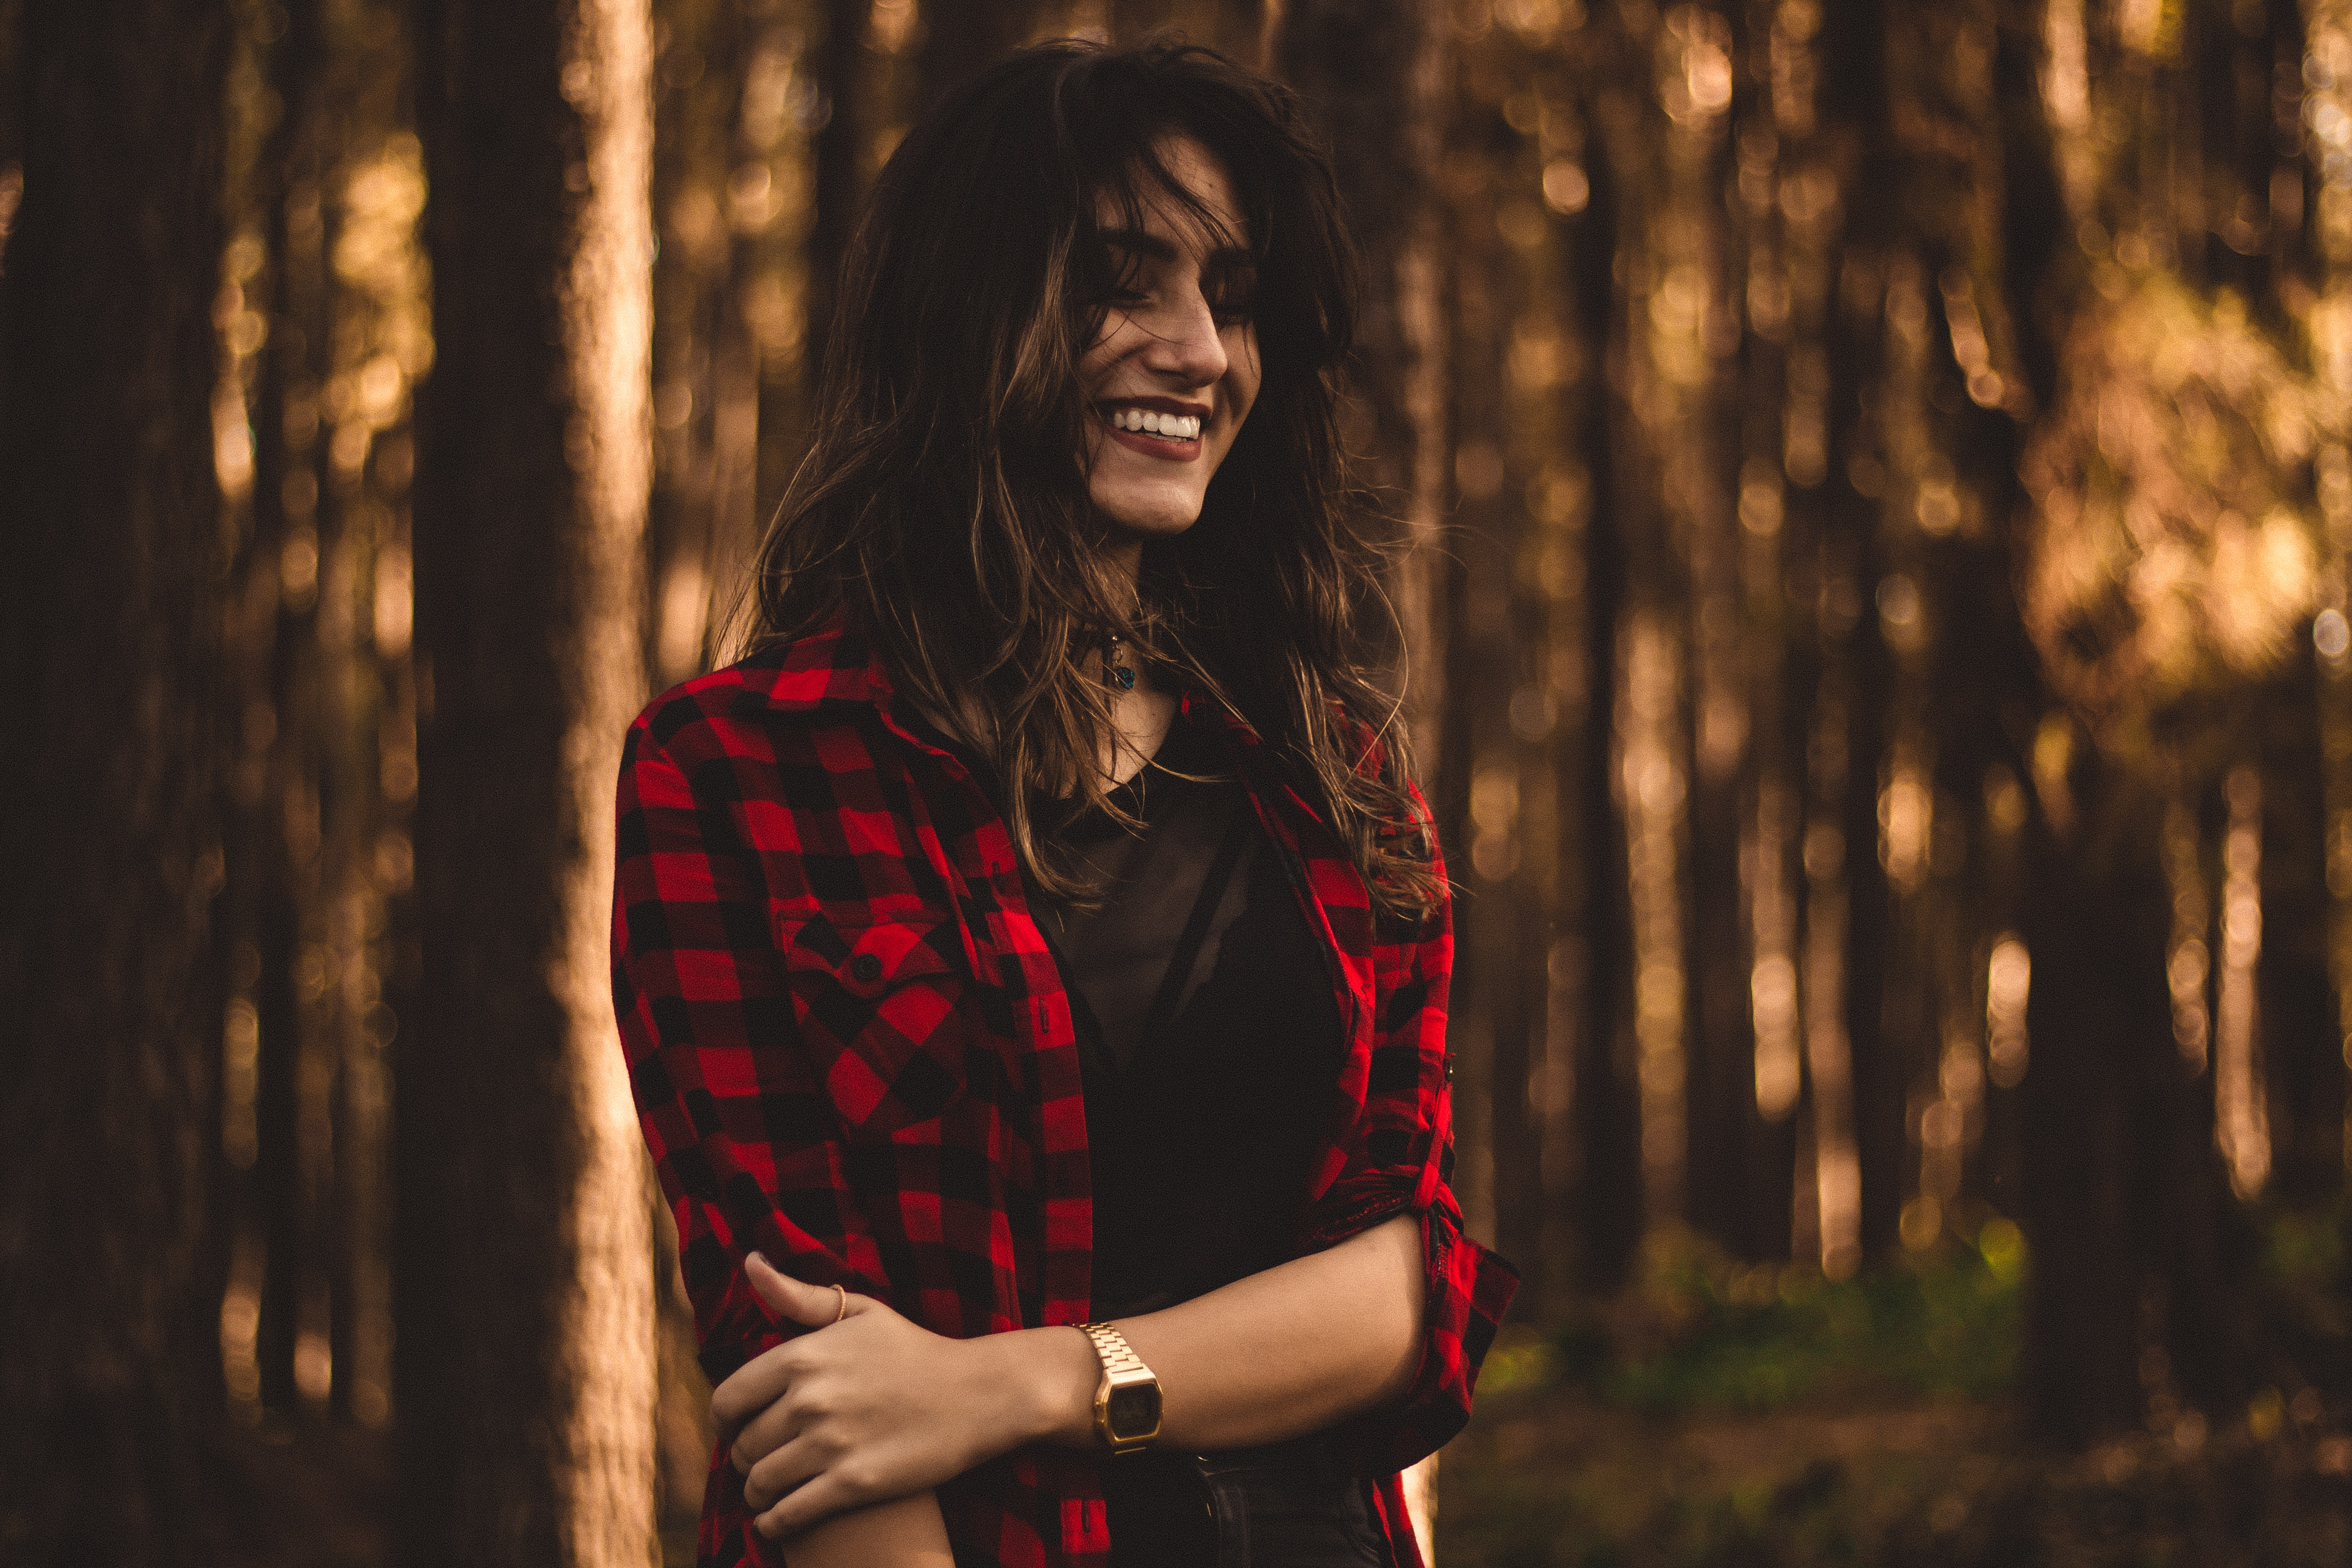 Brown haired woman wearing a plaid, red and black jacket and a watch in the forest